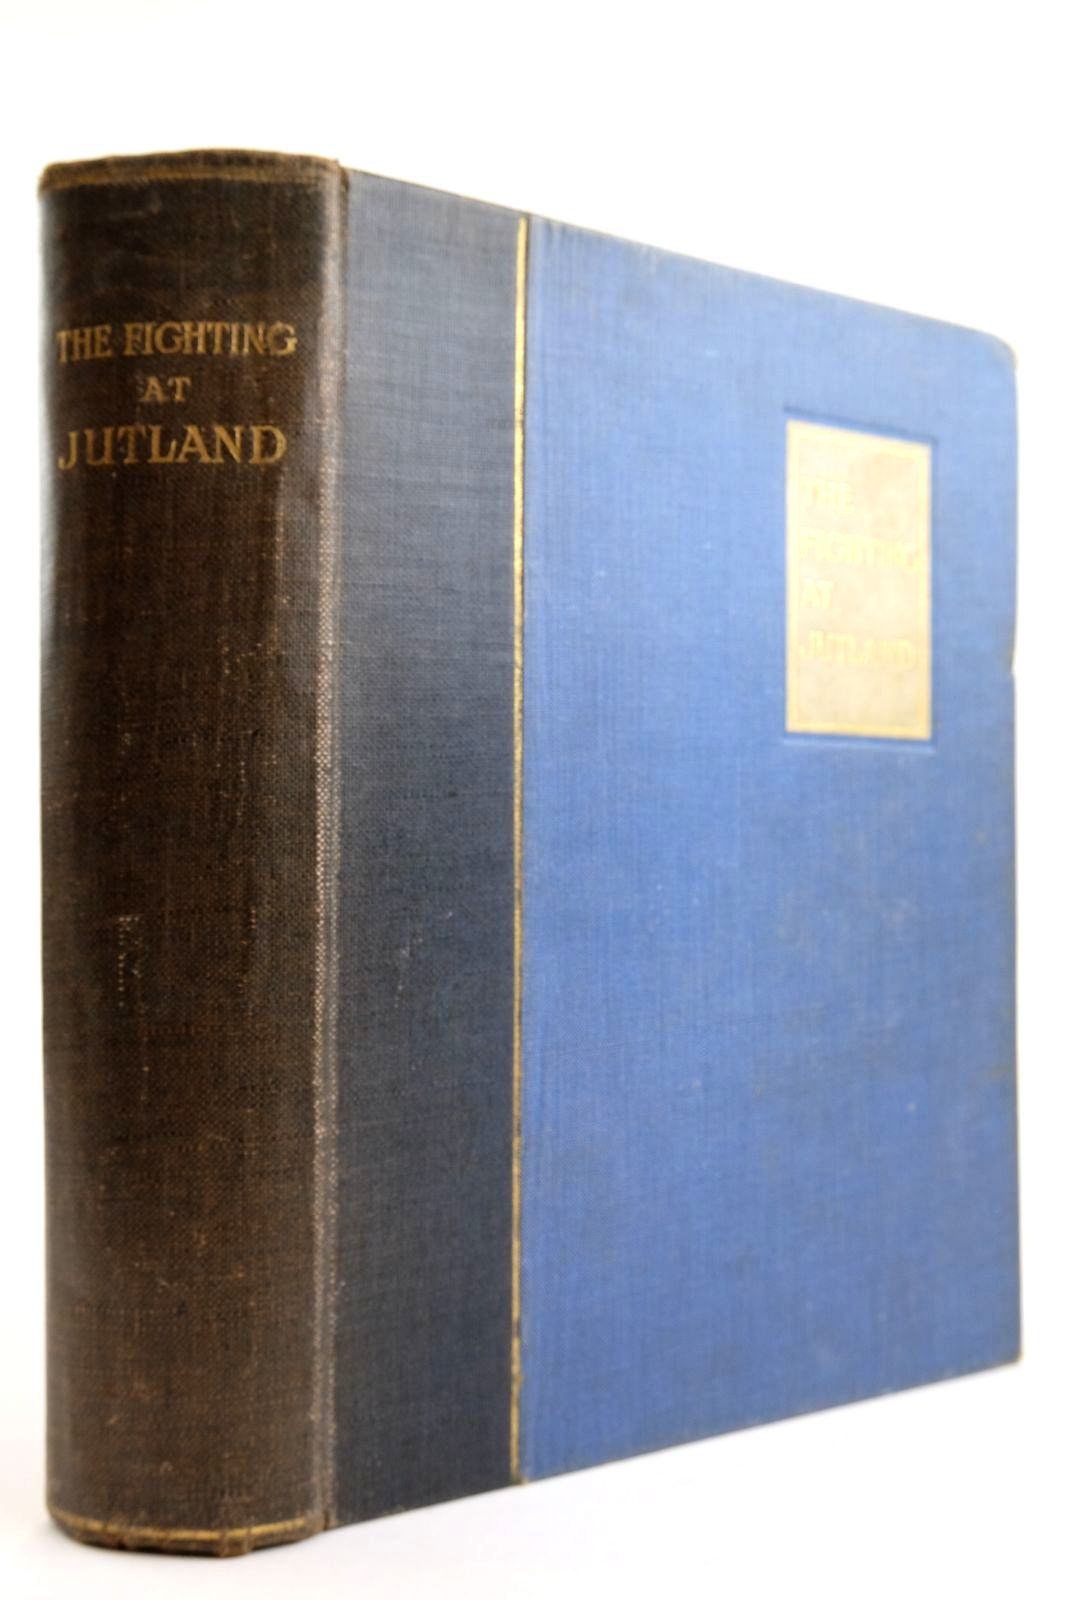 Photo of THE FIGHTING AT JUTLAND written by Fawcett, H.W. Hooper, G.W.W. published by Macmillan & Co. Ltd. (STOCK CODE: 2134014)  for sale by Stella & Rose's Books